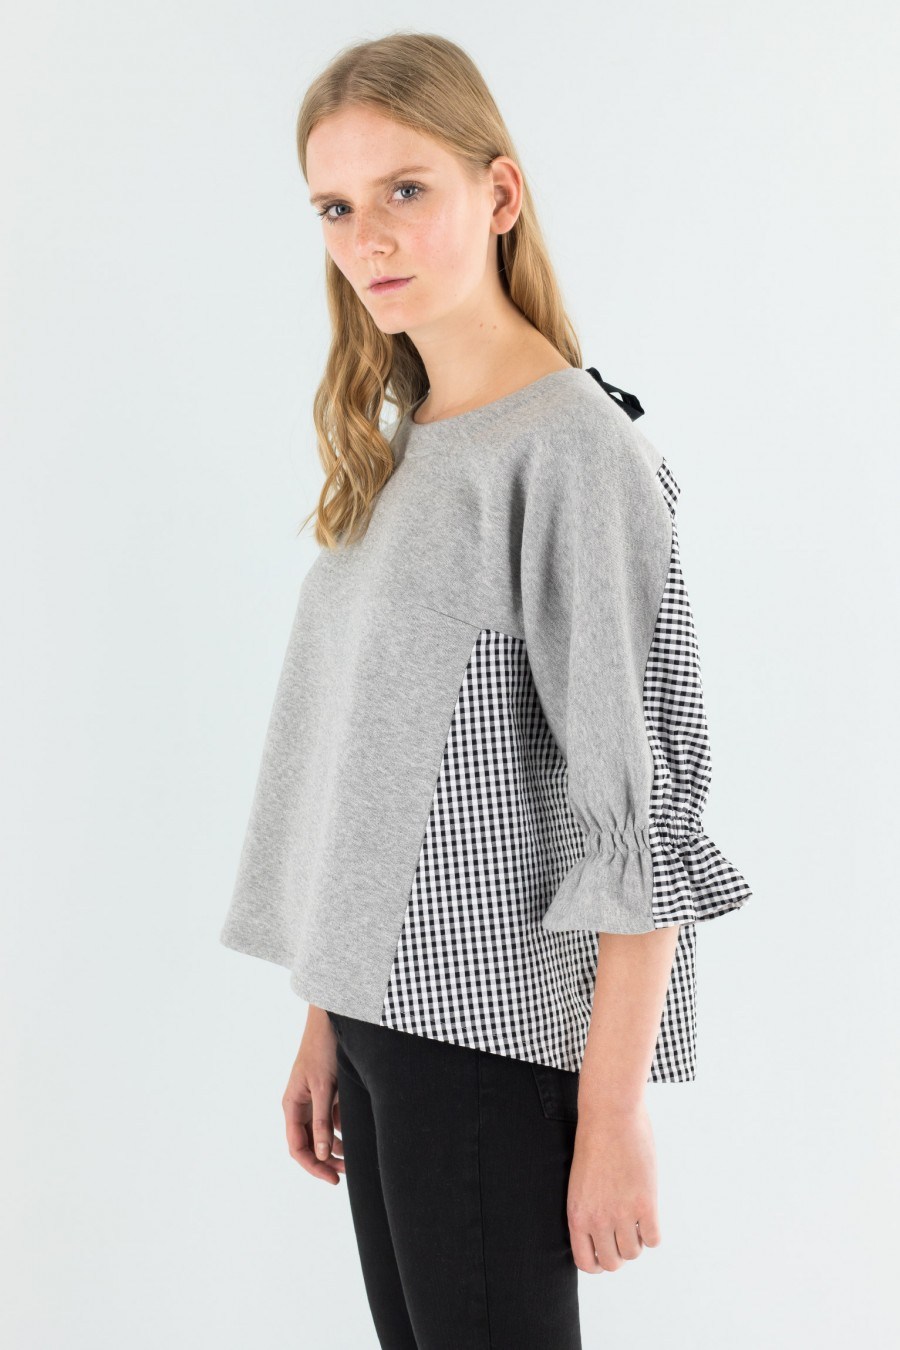 Sweater with black and white inserts